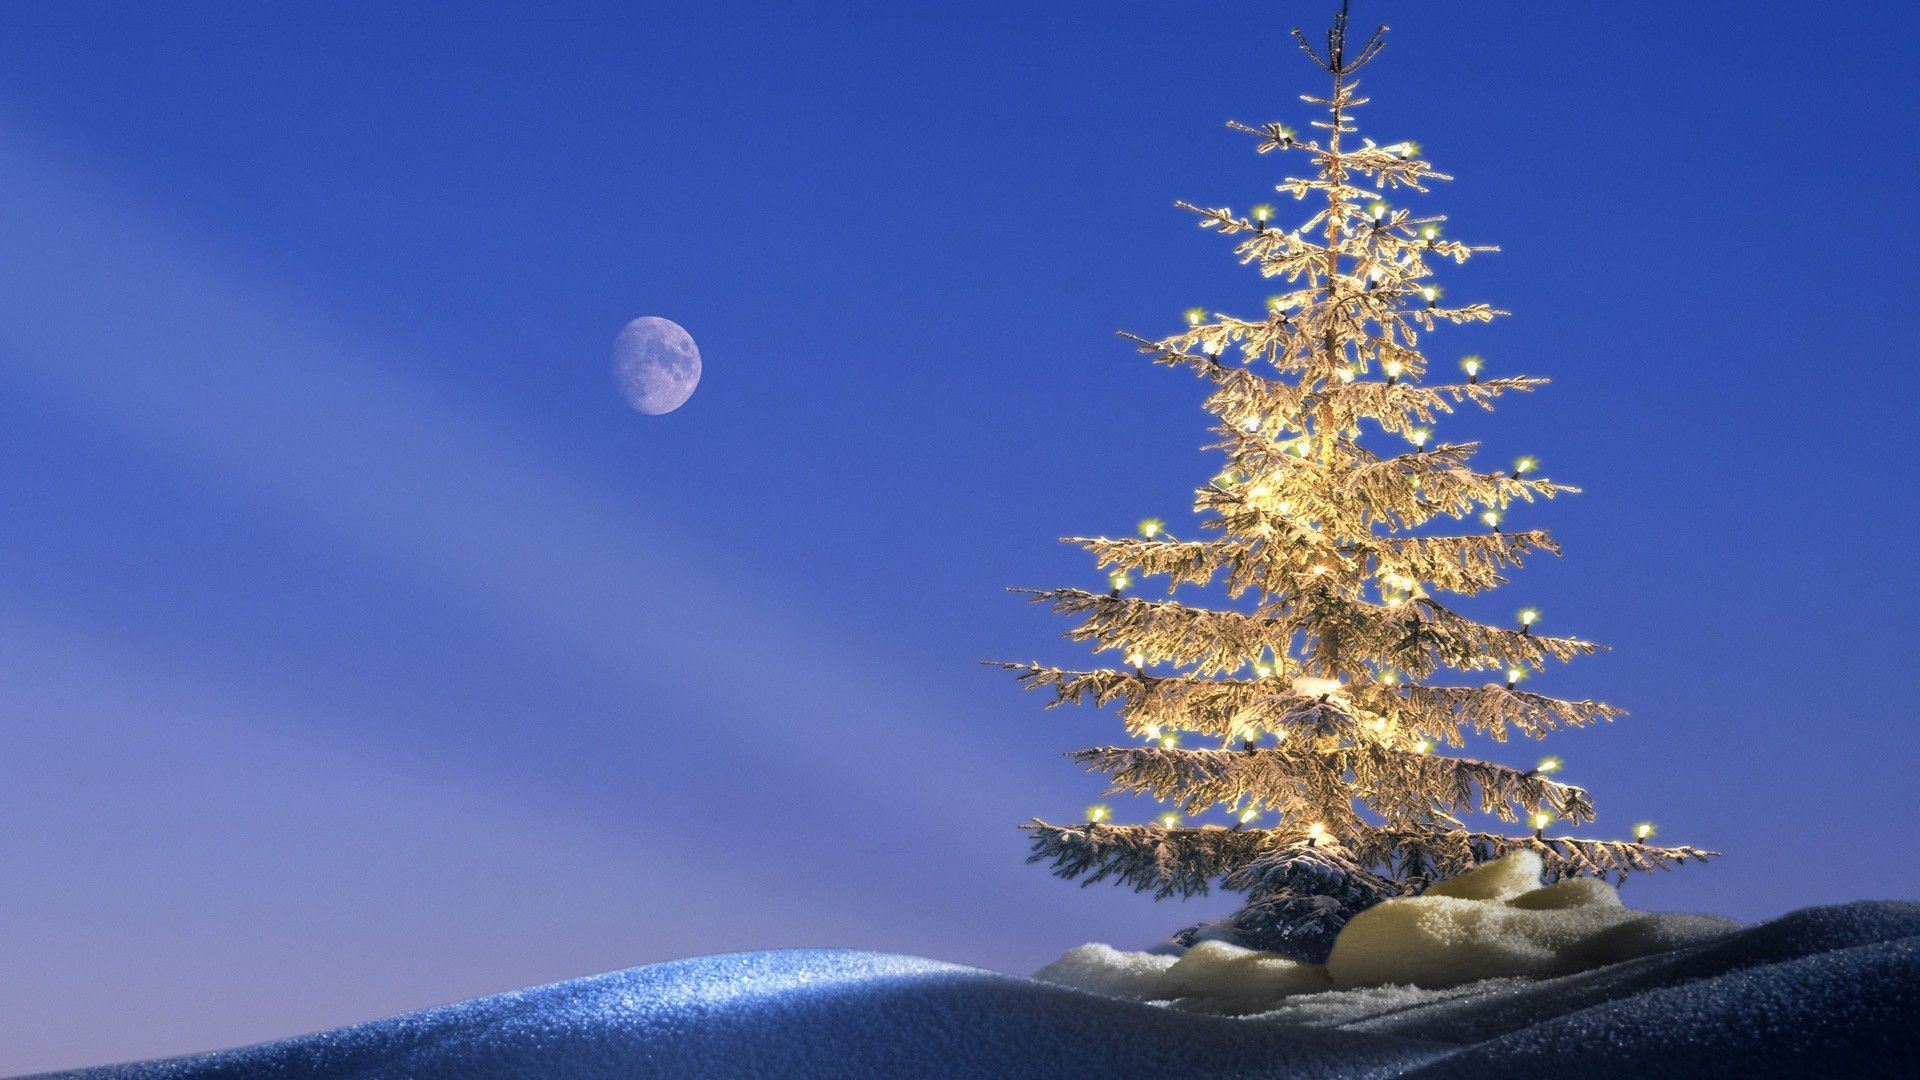 Christmas And New Year Wallpapers HD Desktop Backgrounds